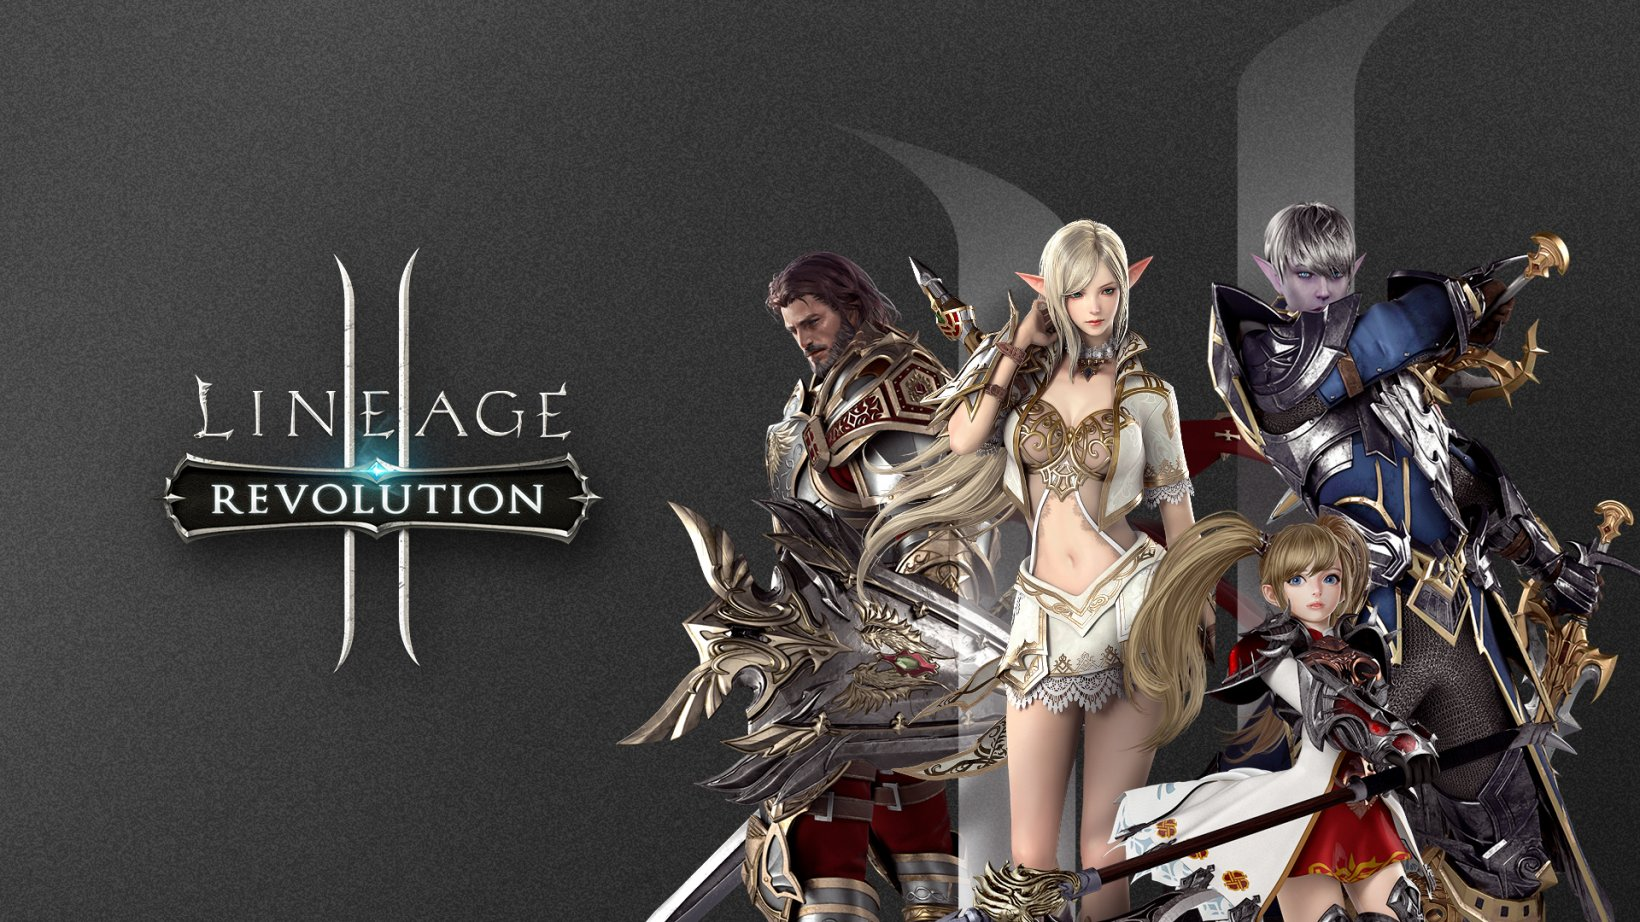 Lineage 2: Revolution has received its first expansion pack since launch, Anthara's Rage